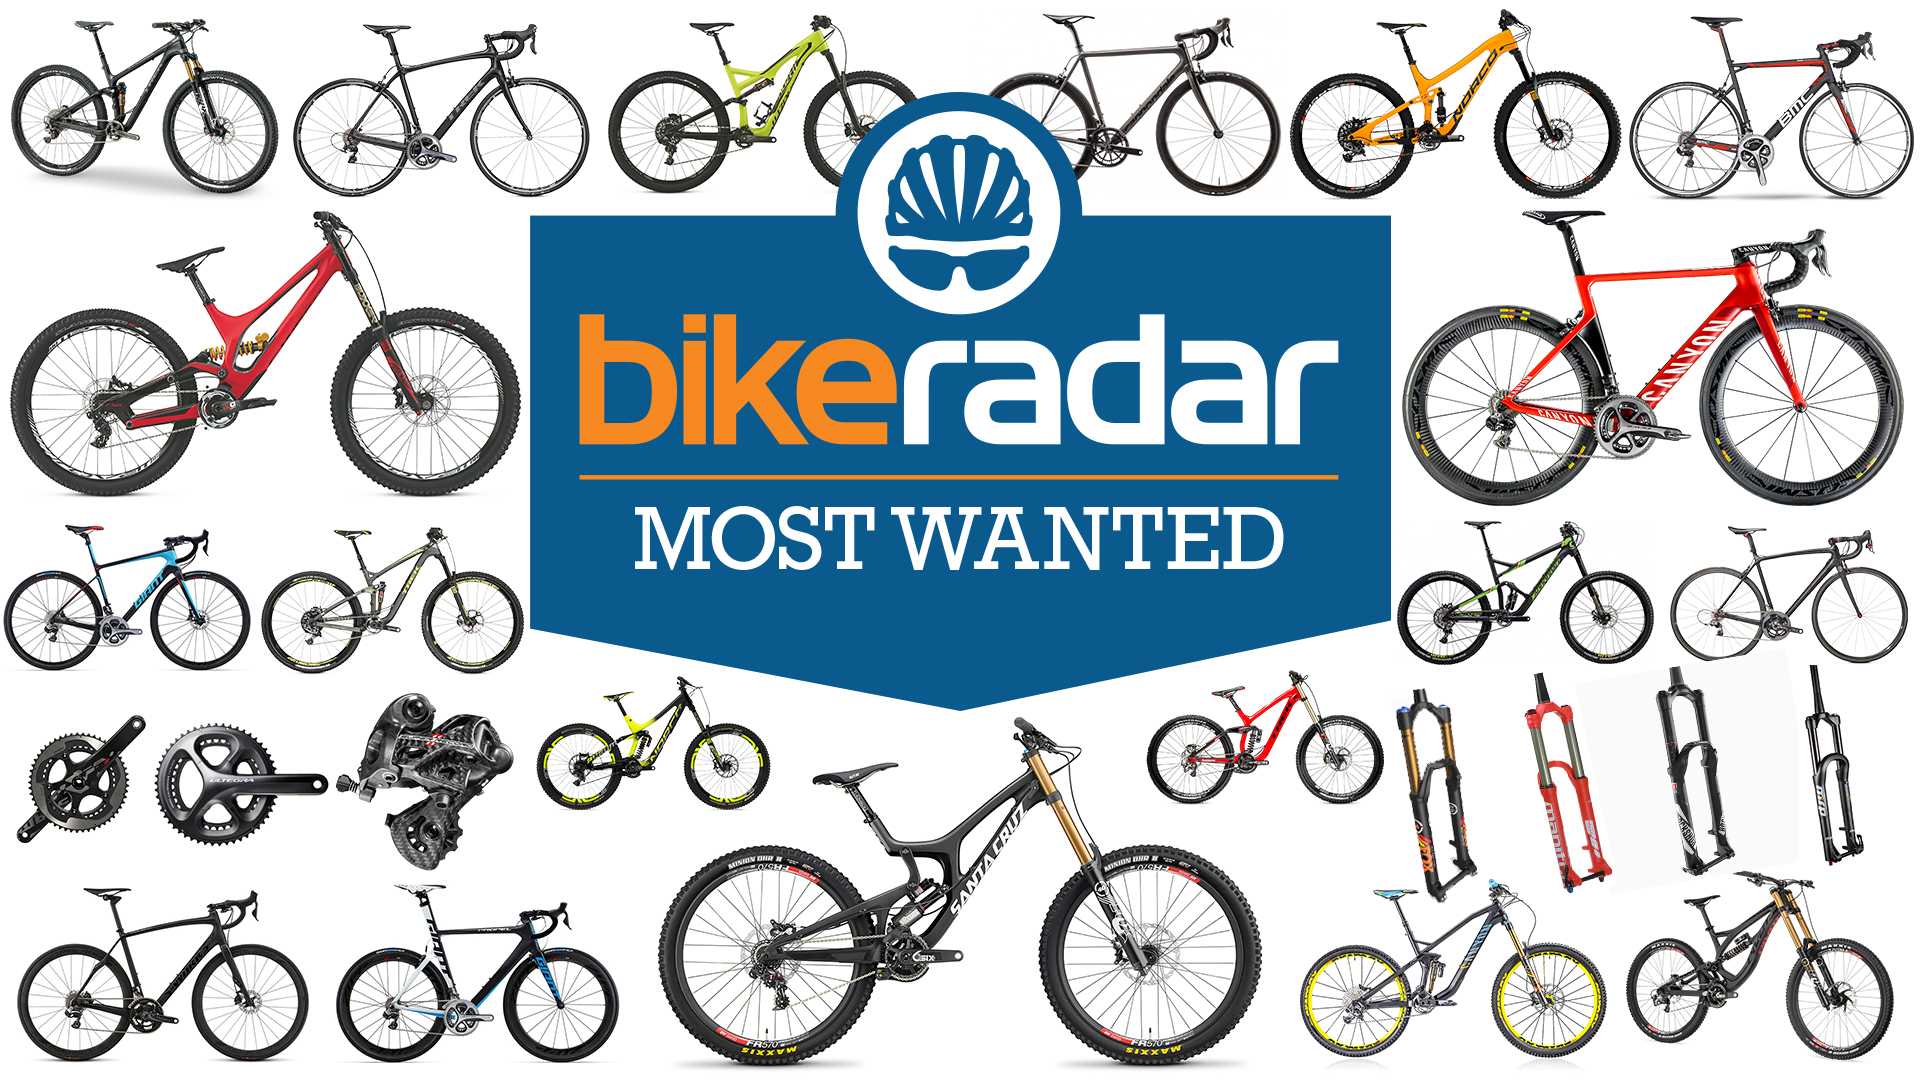 Photo: BikeRadar received more than 69,000 votes for the Most Wanted Awards.